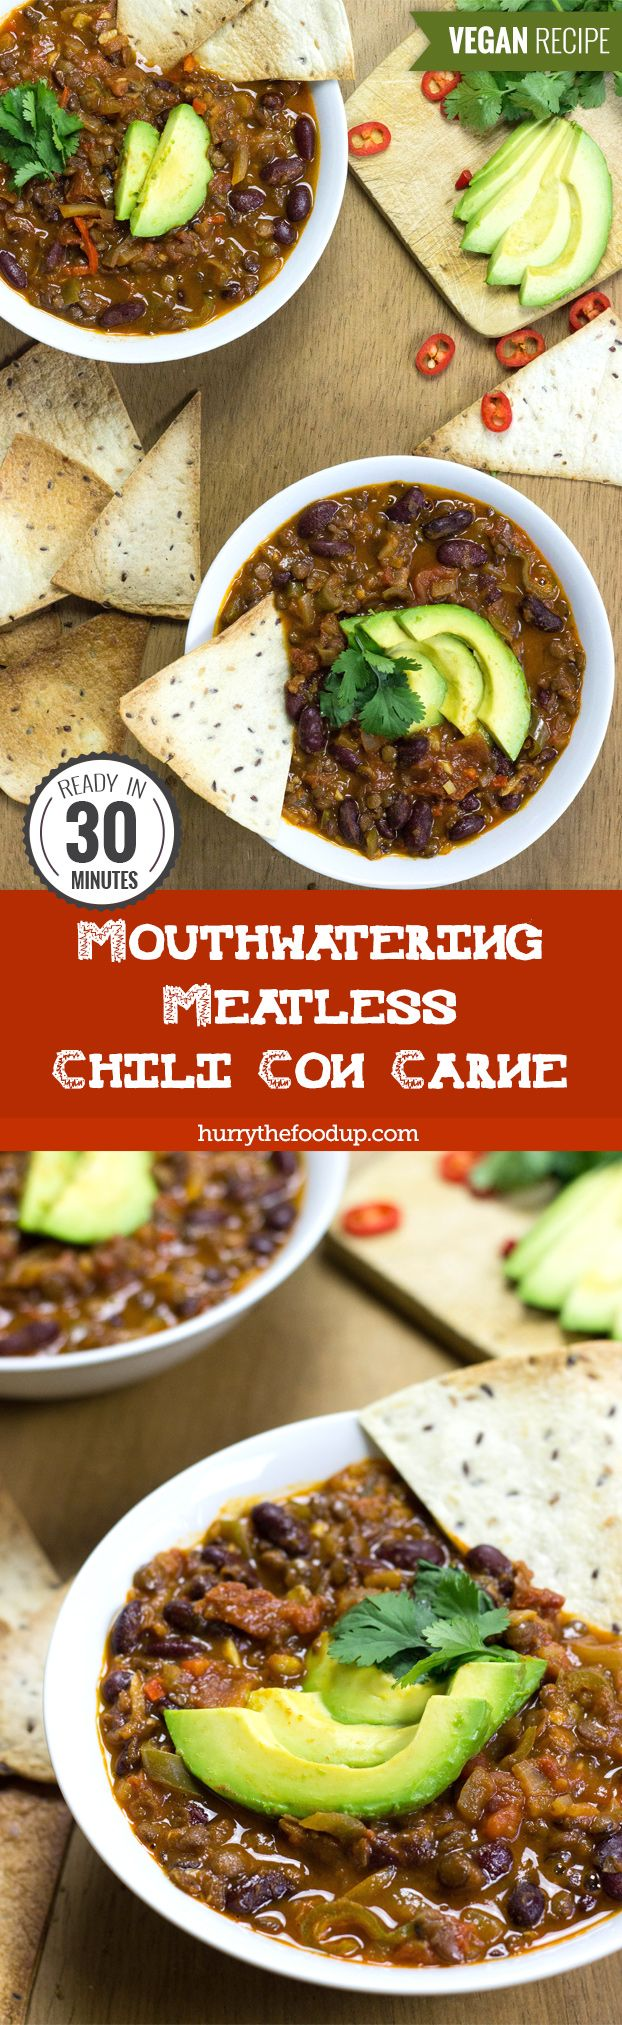 Mouthwatering Meatless Chili Con Carne (vegan) #veggie #chili #concarne | hurrythefoodup.com